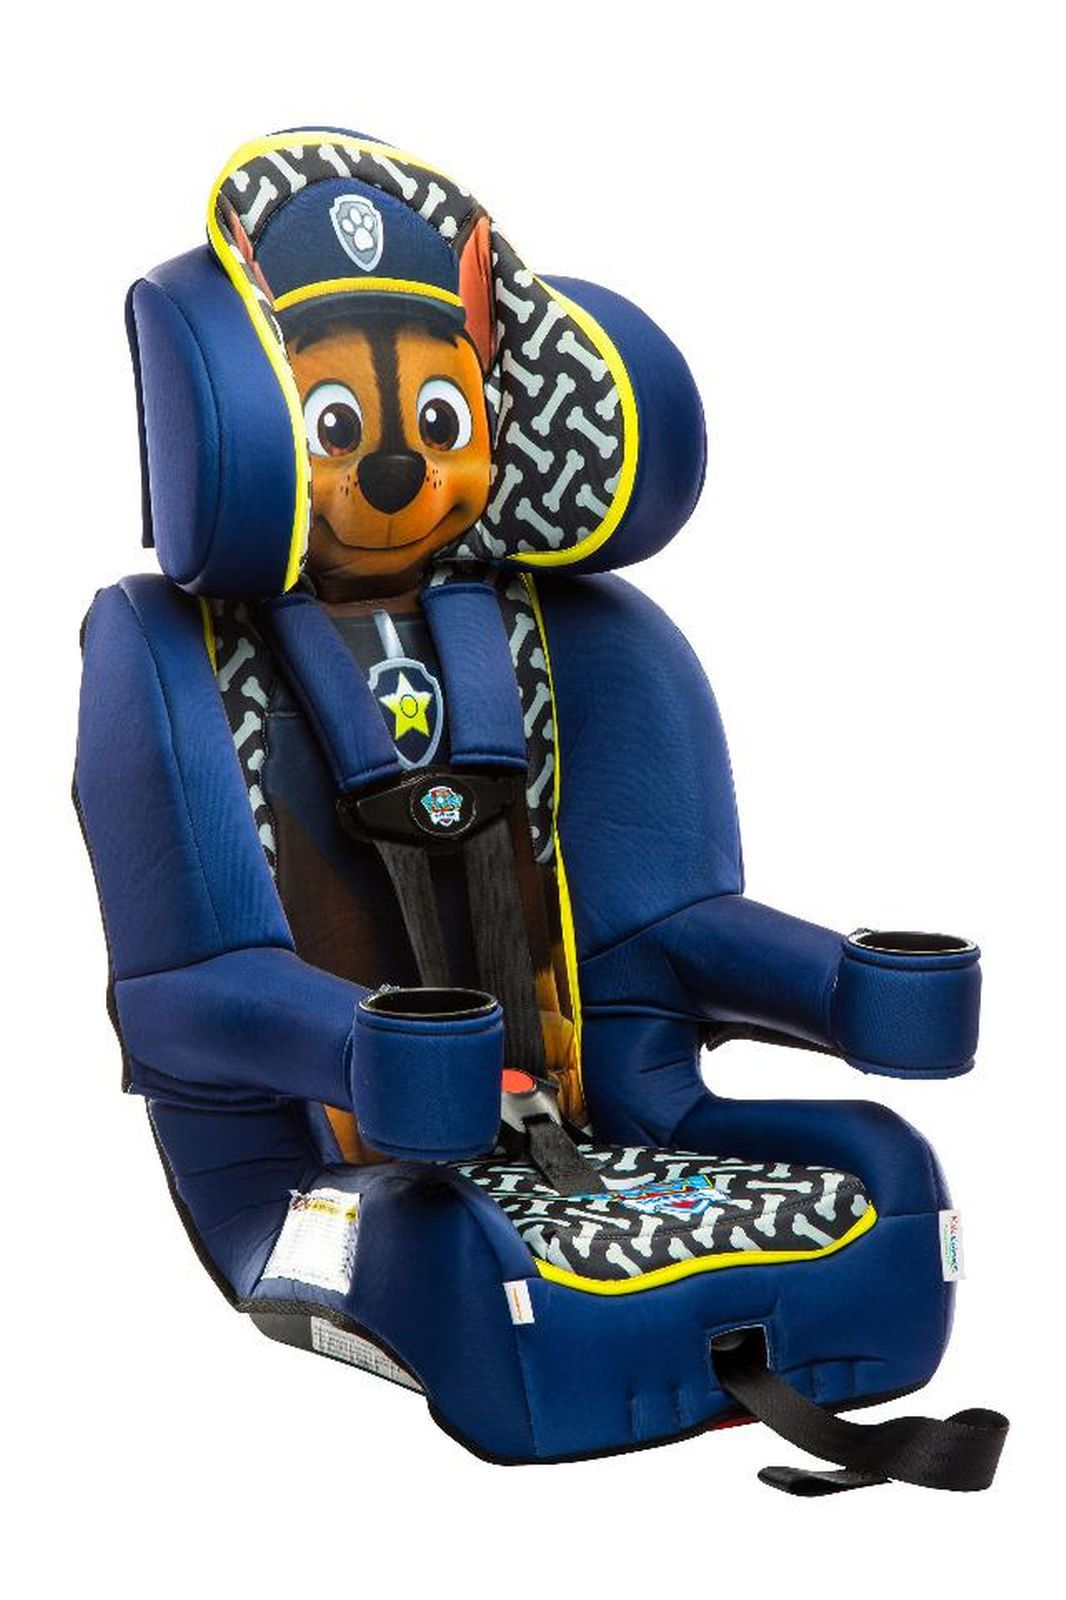 KidsEmbrace Friendship Combination Toddler Harness Booster Car Seat